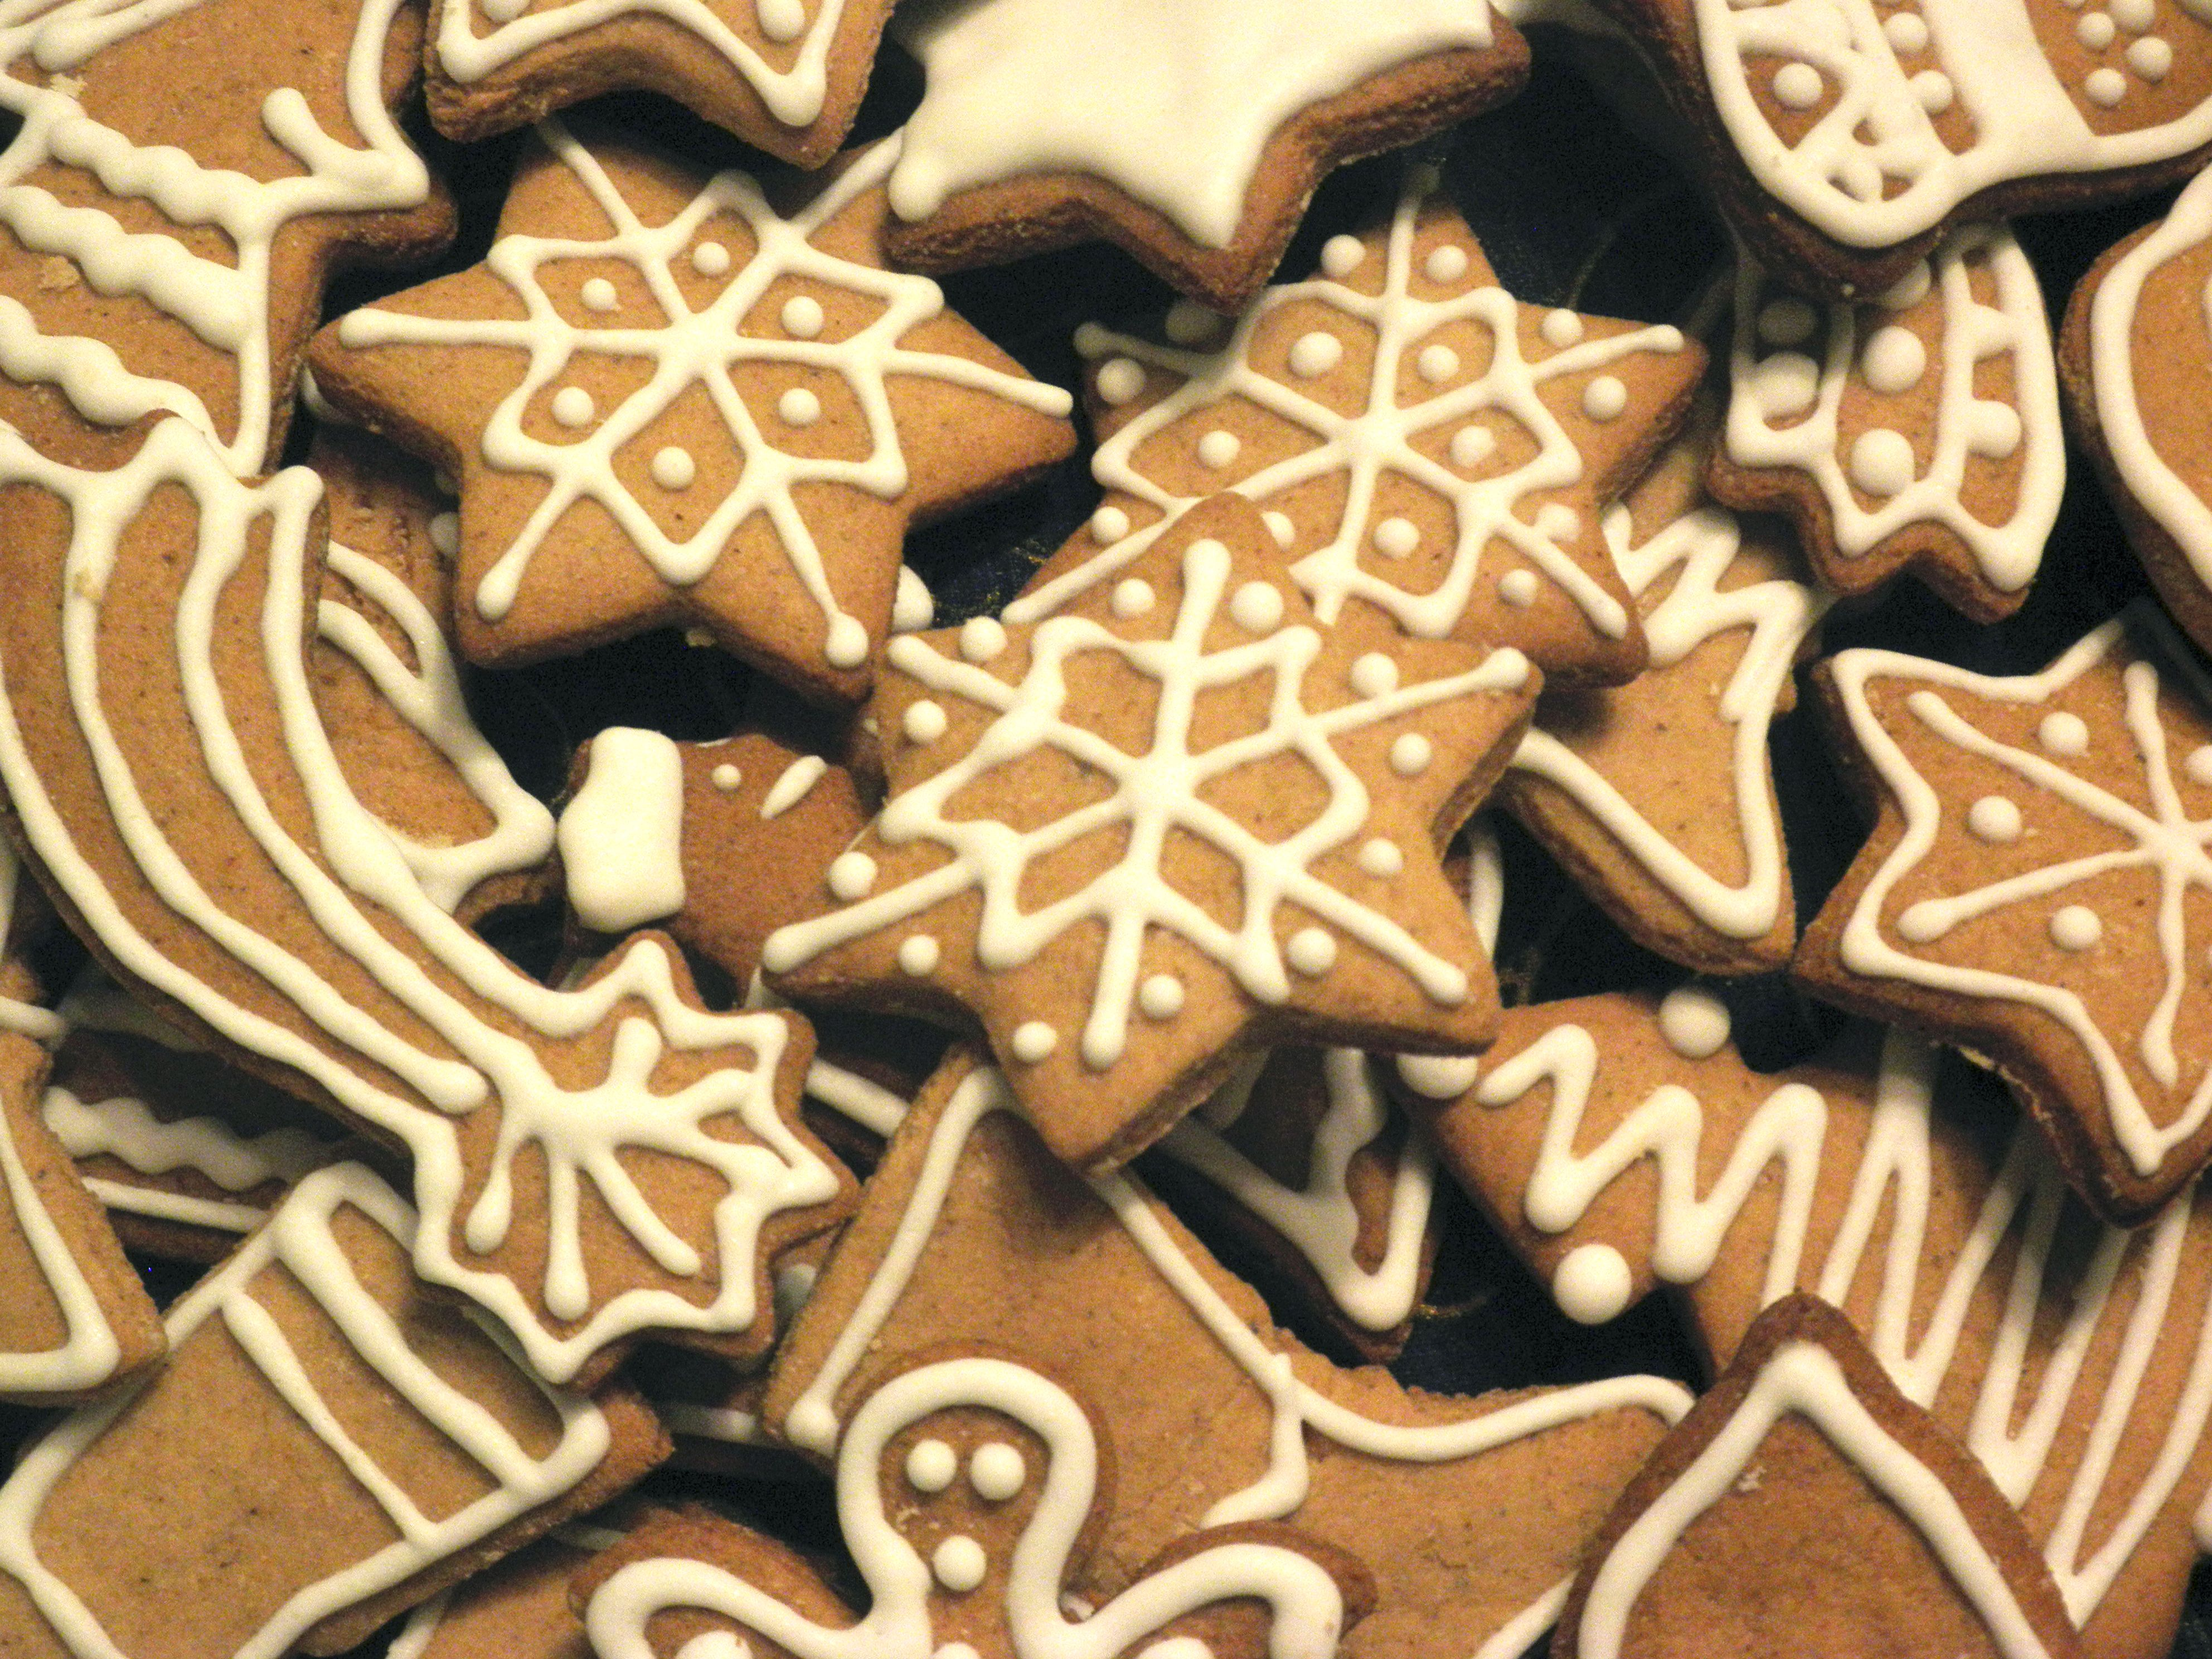 Chritmas Gingerbread